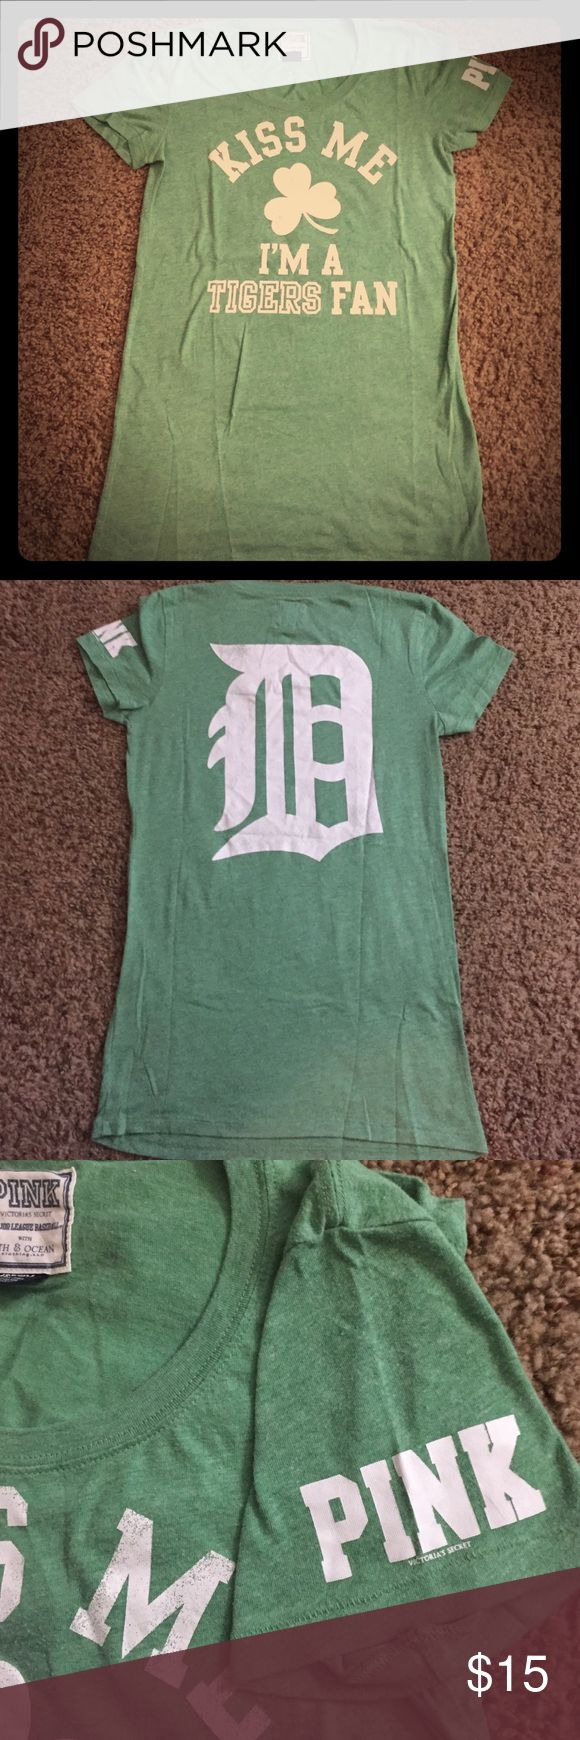 PINK Detroit Tigers St. Patrick's Day Shirt Sz M PINK Victoria's Secret Detroit Tigers t-shirt. Perfect for St. Patrick's Day!! In good shape! Kidss Me I'm a Tigers Fan on the front and Old English D on the back. PINK Victoria's Secret Tops Tees - Short Sleeve